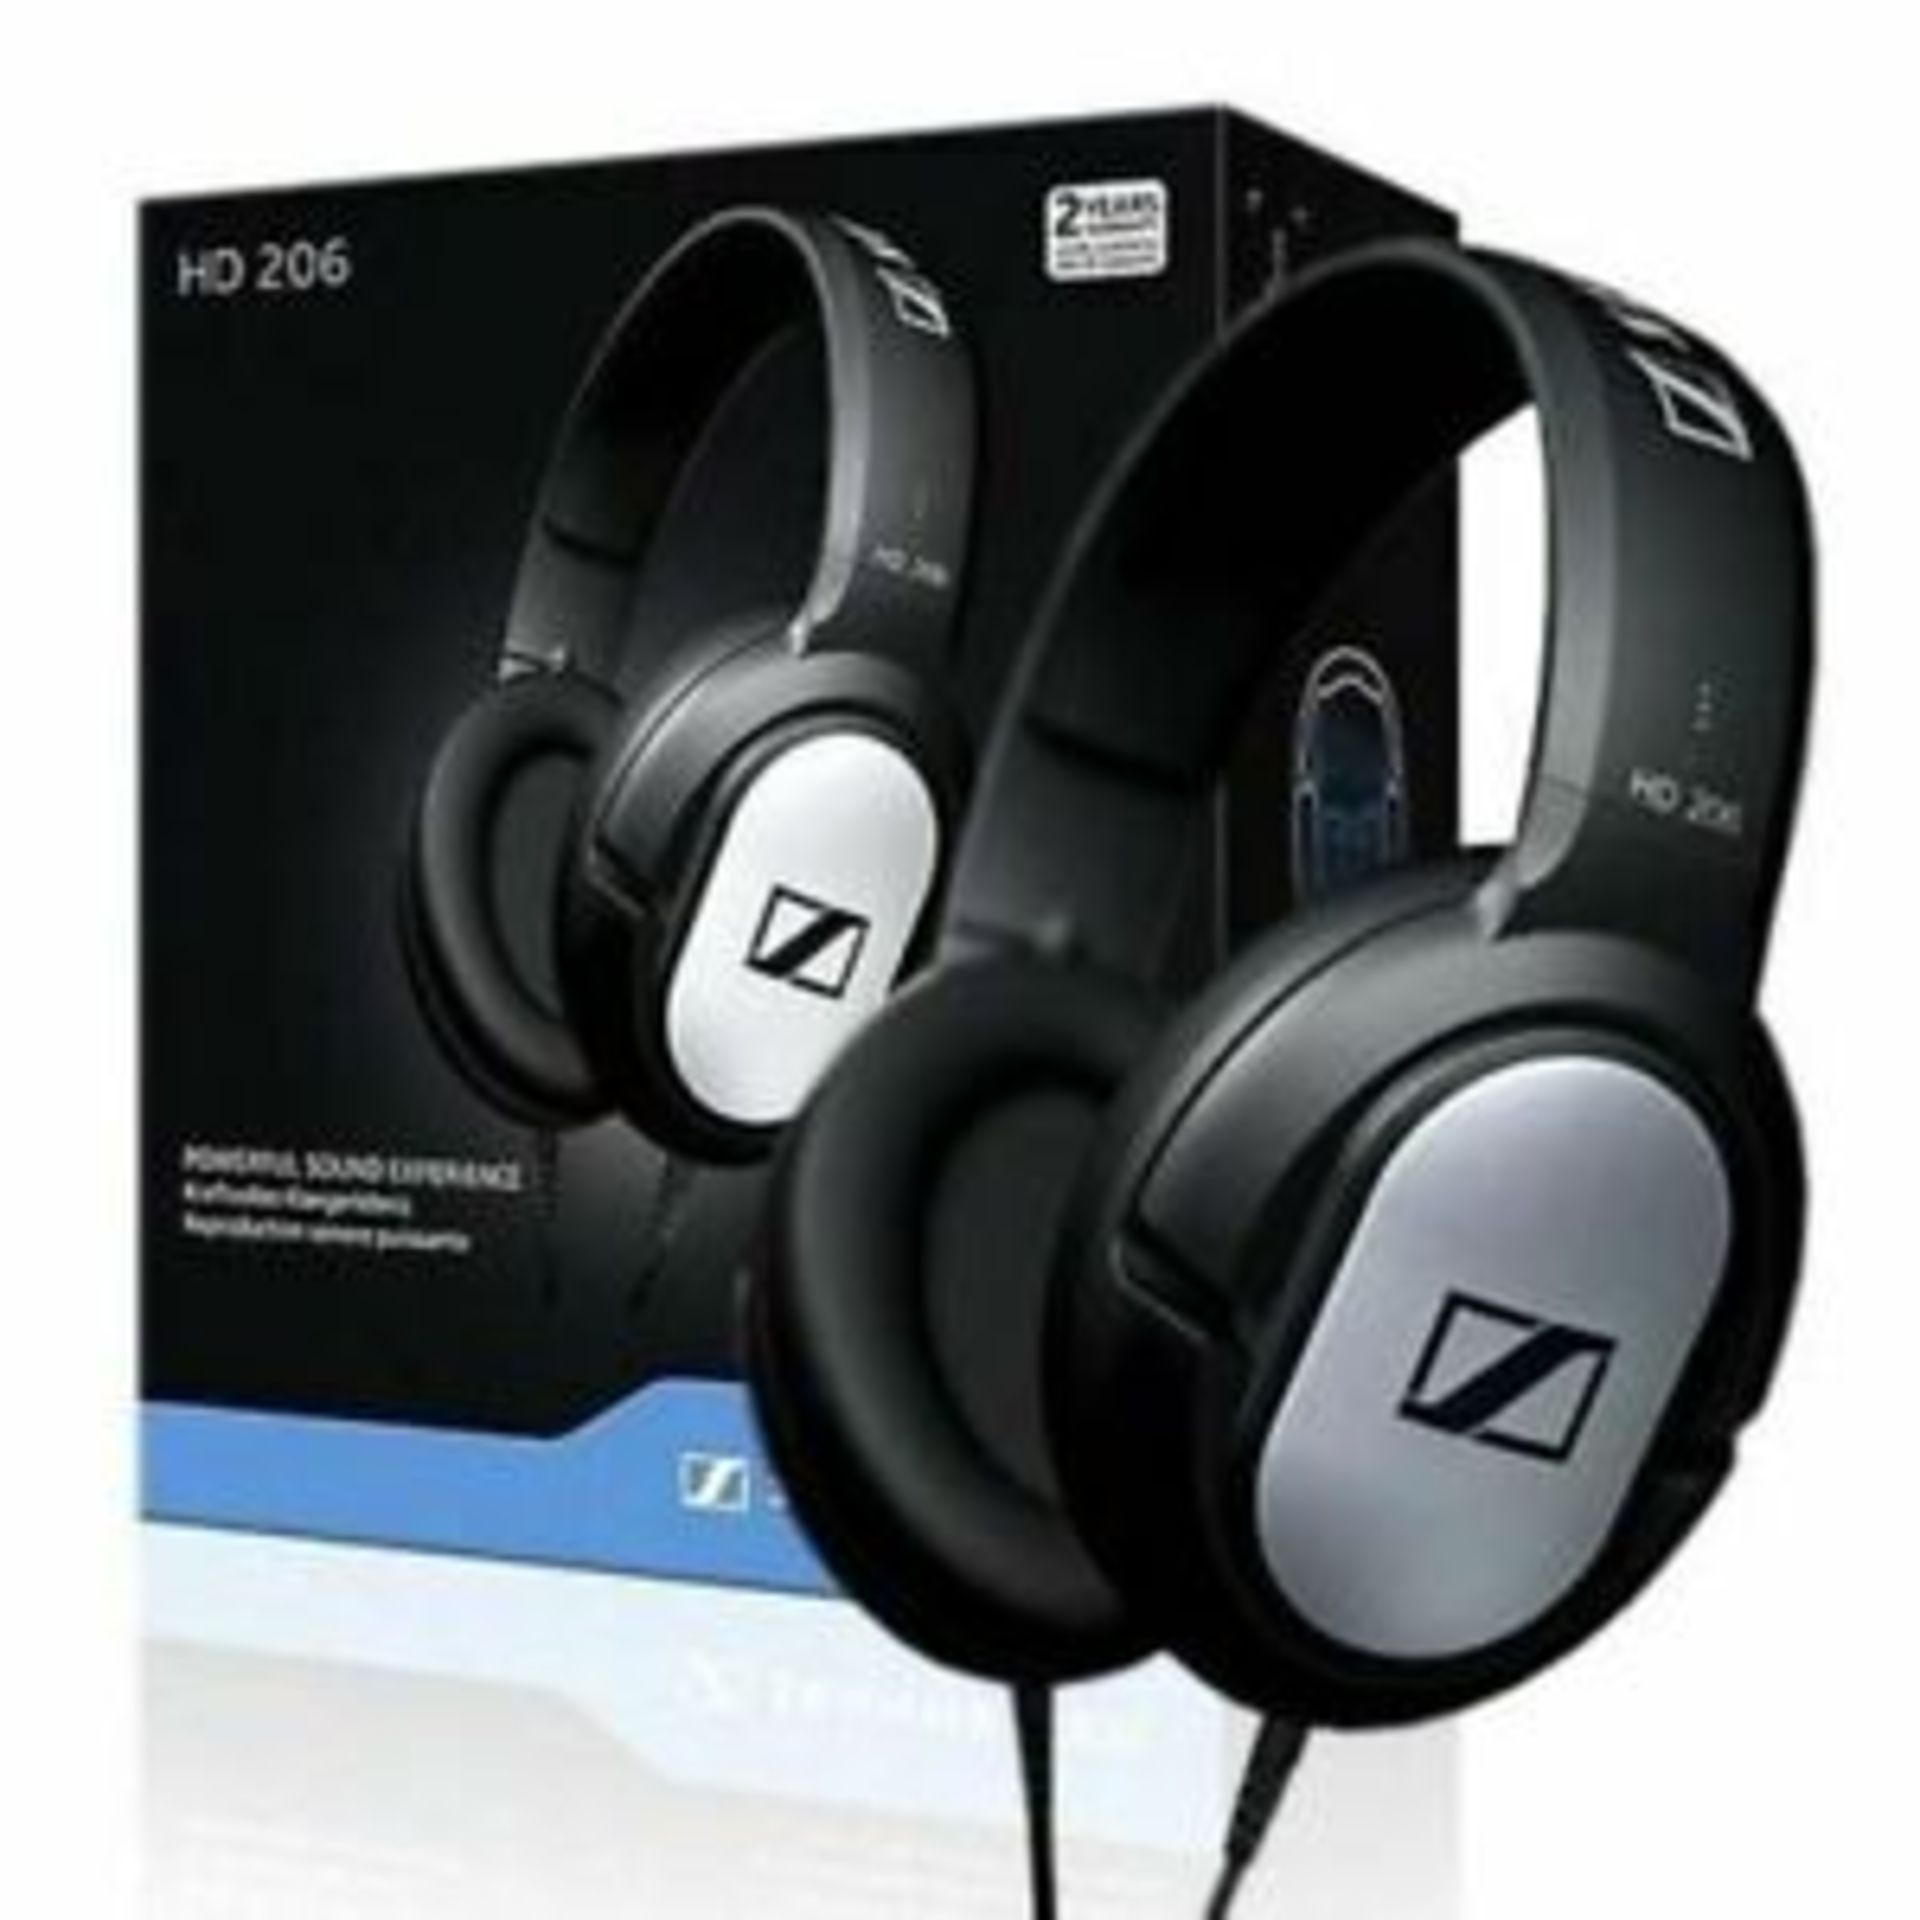 + VAT Grade A Sennheiser HD206 Closed Cup Headphones - Image 2 of 2